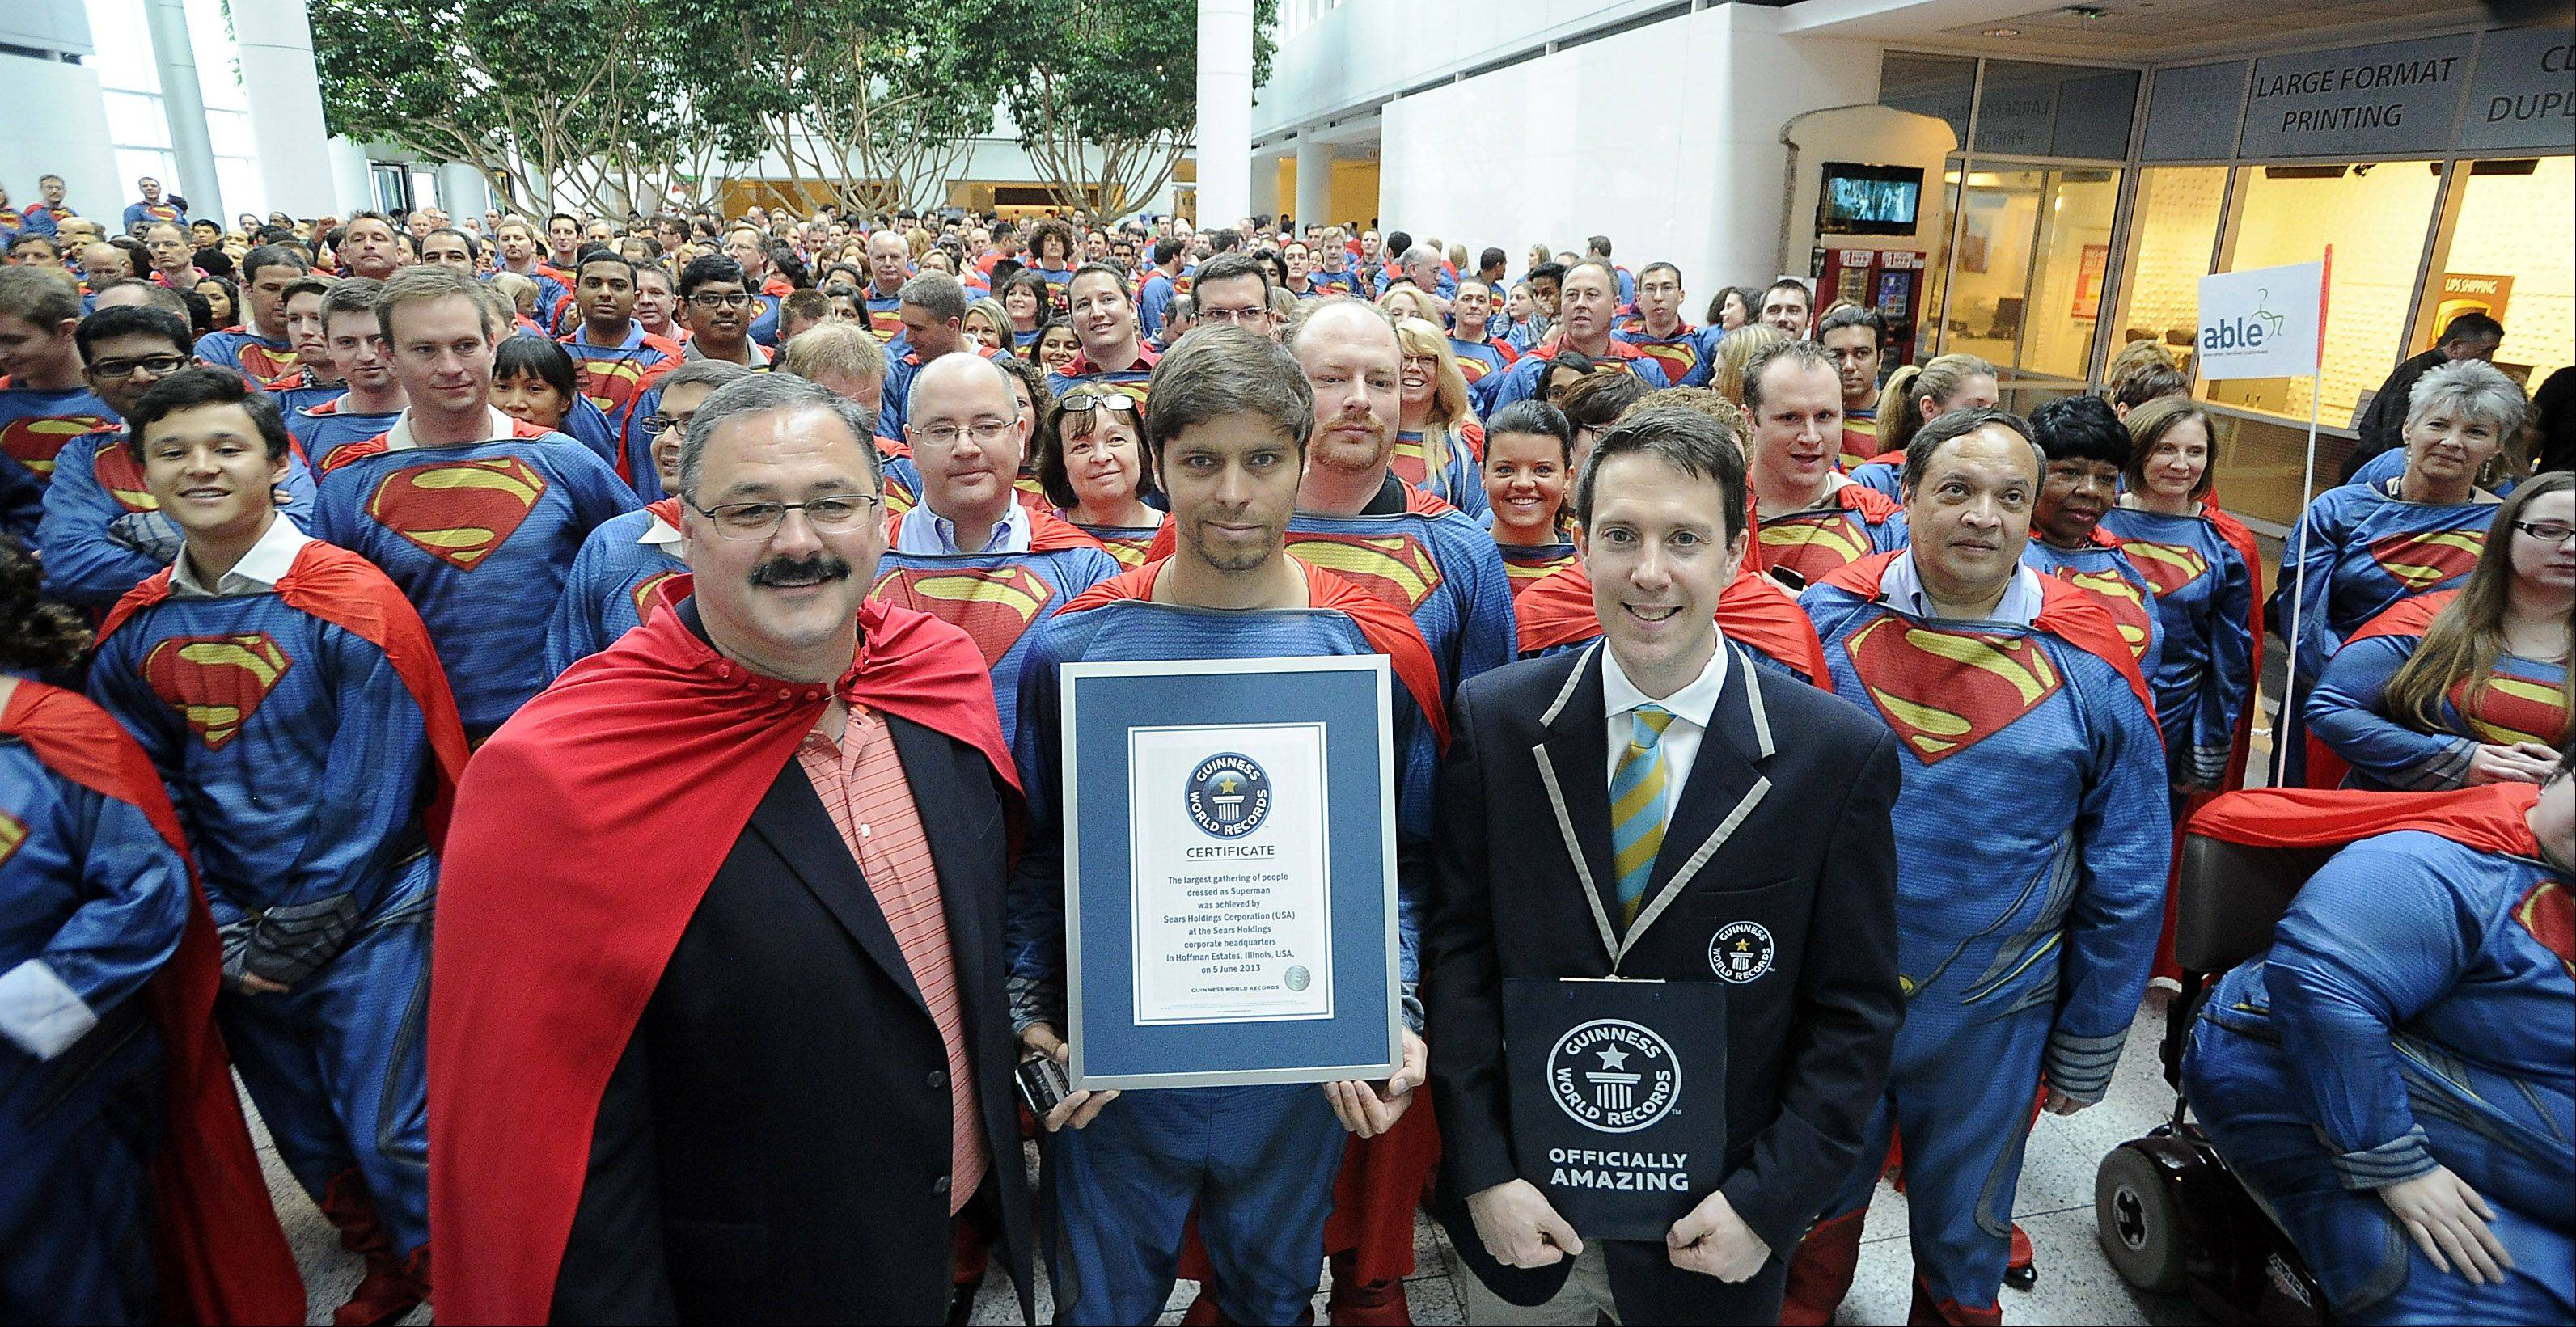 From left, Ron Boire, executive vice president of Sears Holdings Corp., Sears employee Vitaly Demin and Philip Robertson, adjudicator with Guinness World Records, show off the certificate.